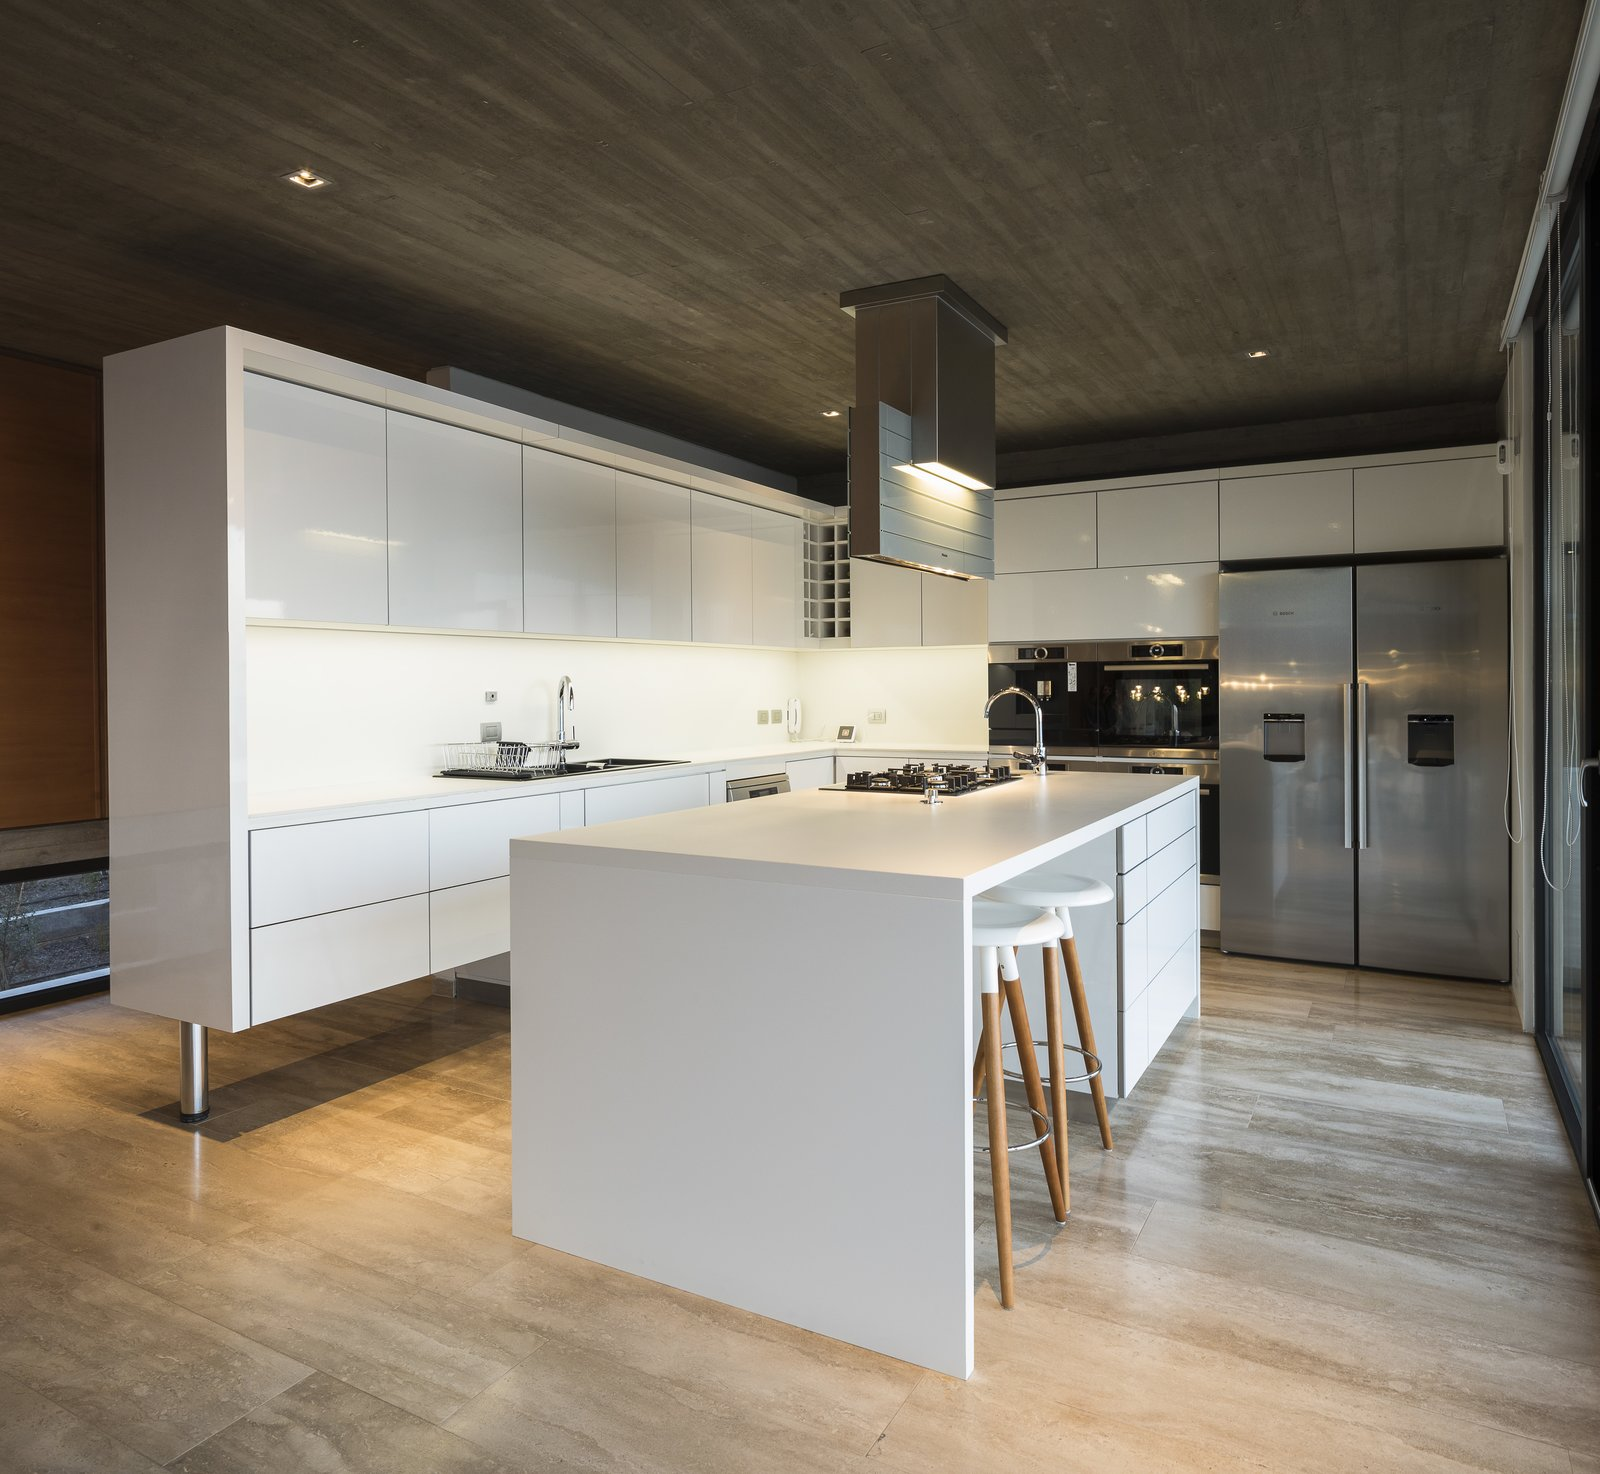 Kitchen, Wall Oven, Range Hood, Recessed Lighting, Ice Maker, Refrigerator, Cooktops, White Cabinet, and Drop In Sink An all-white kitchen works well with the concrete to give the space a cool, minimalist look.    Best Photos from This Chilean Concrete Home Levitates Off a Coastal Slope